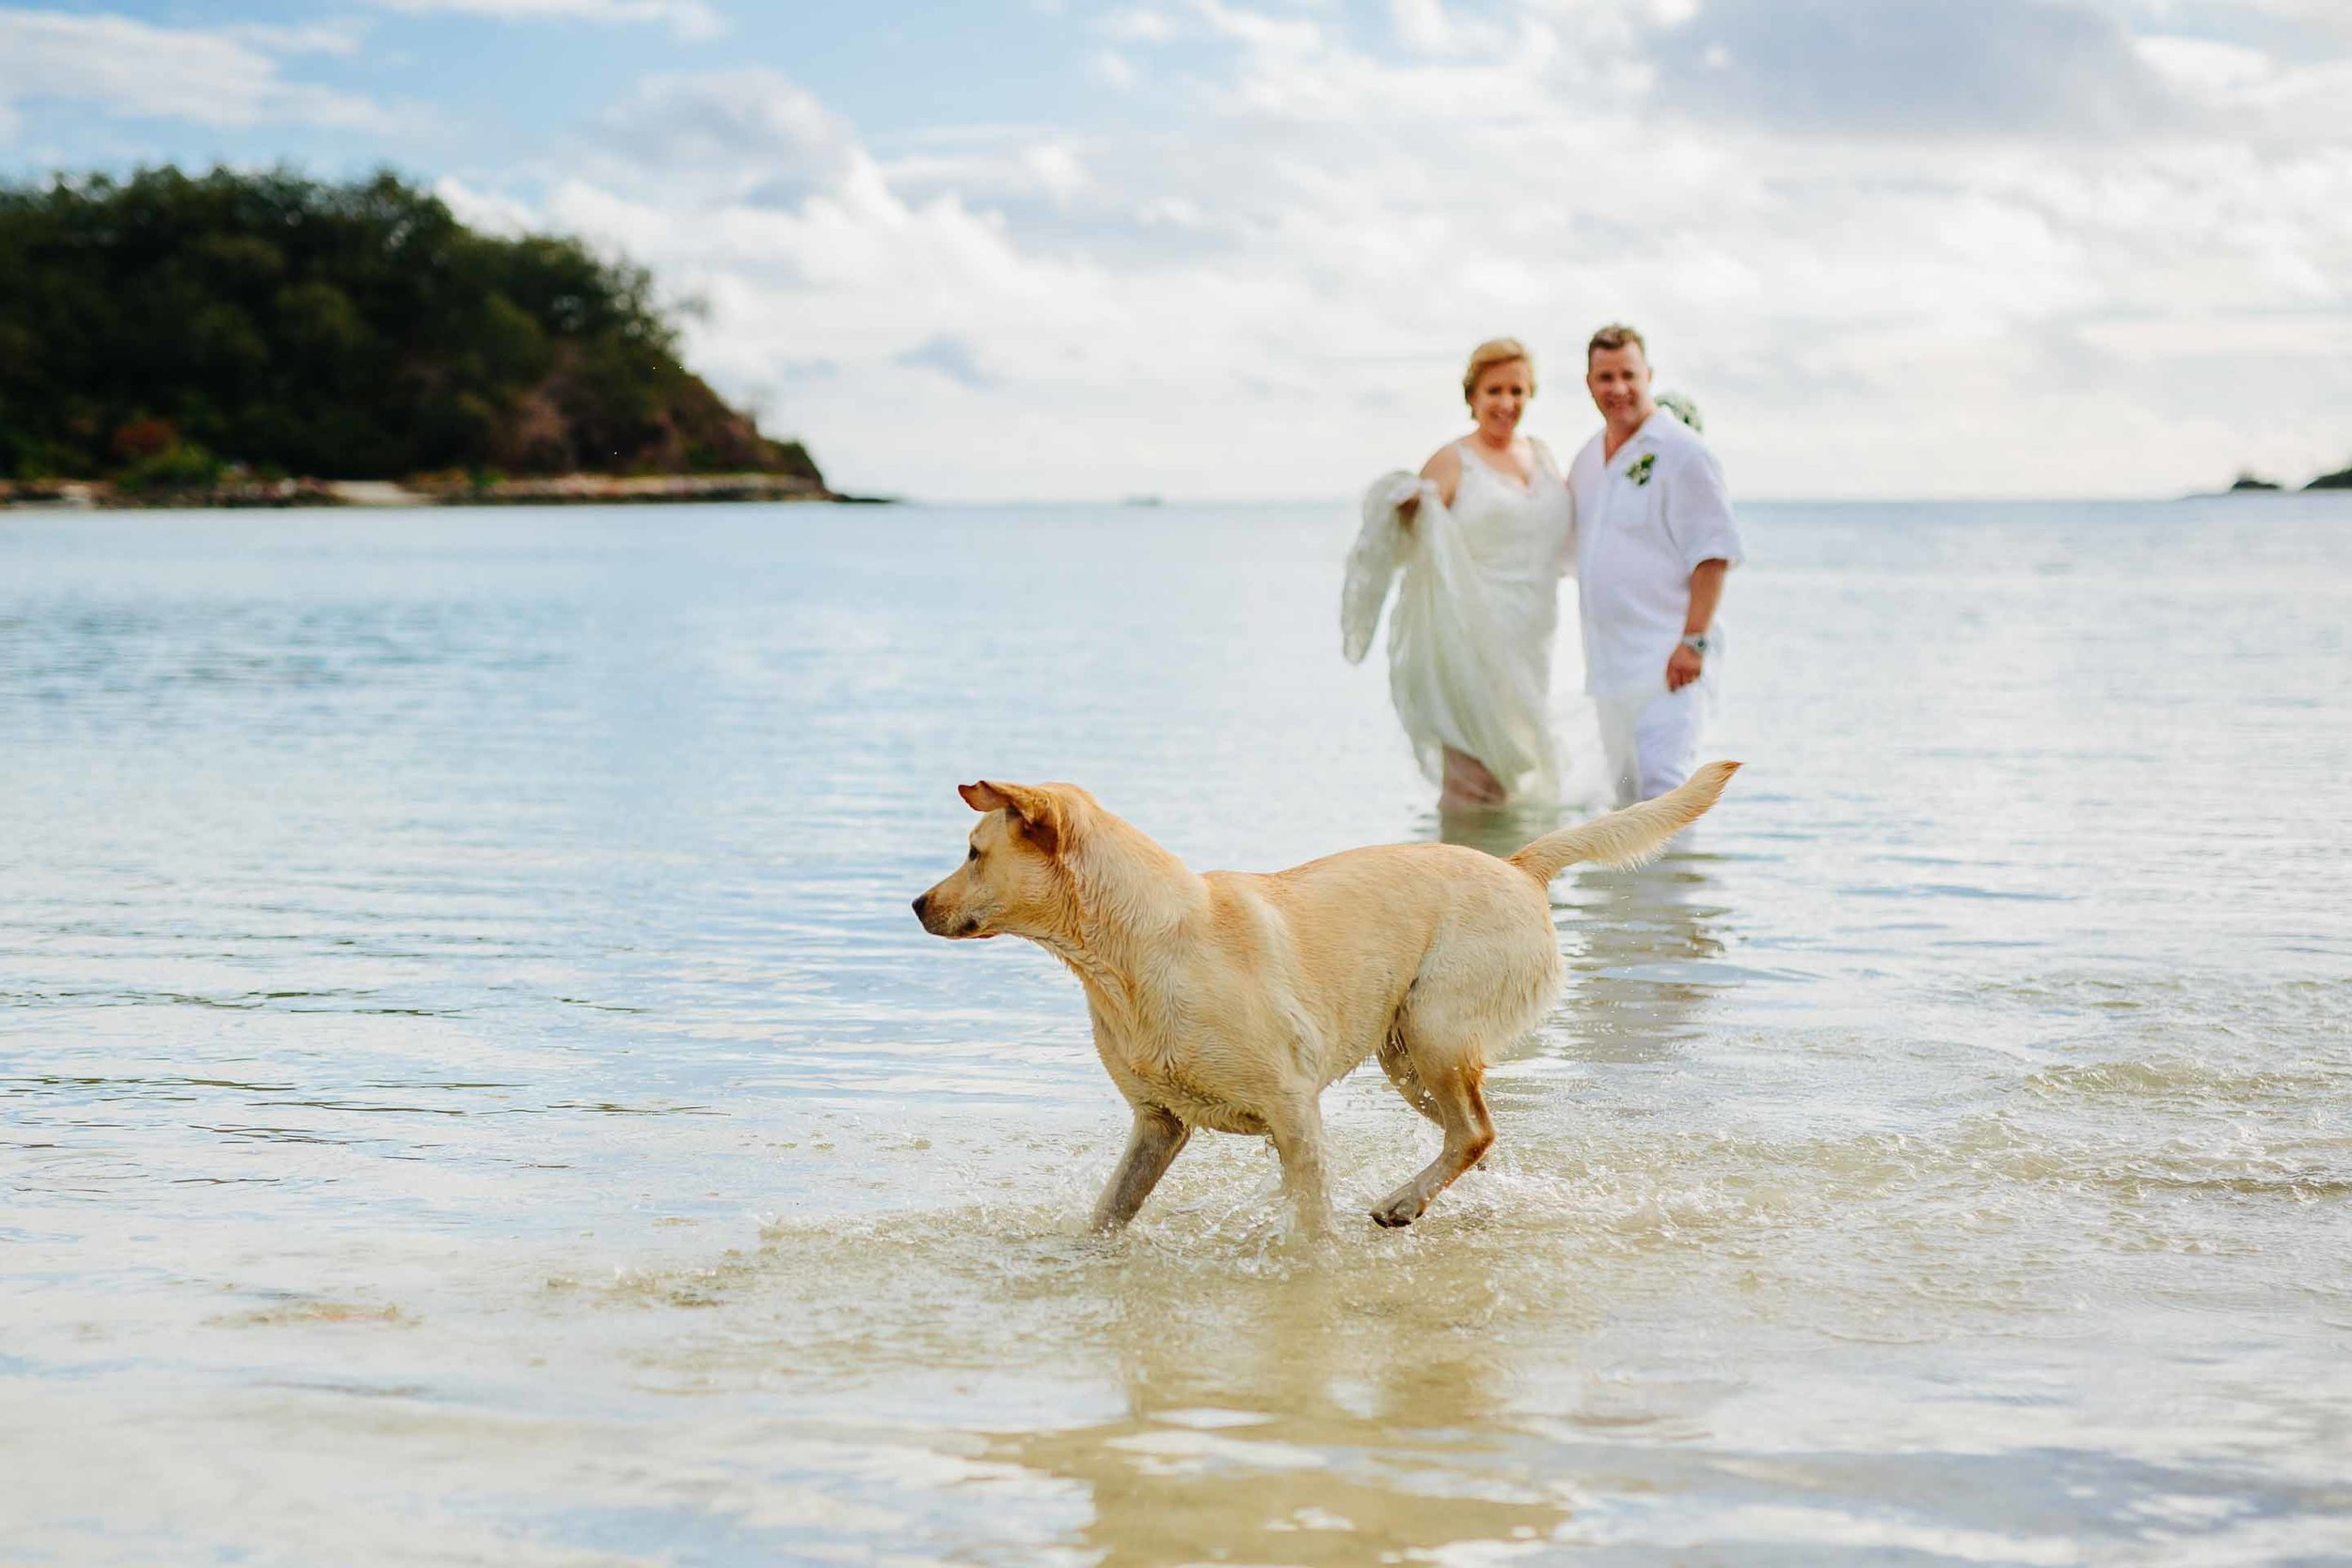 coco the resort dog chasing fish in front of the newly weds